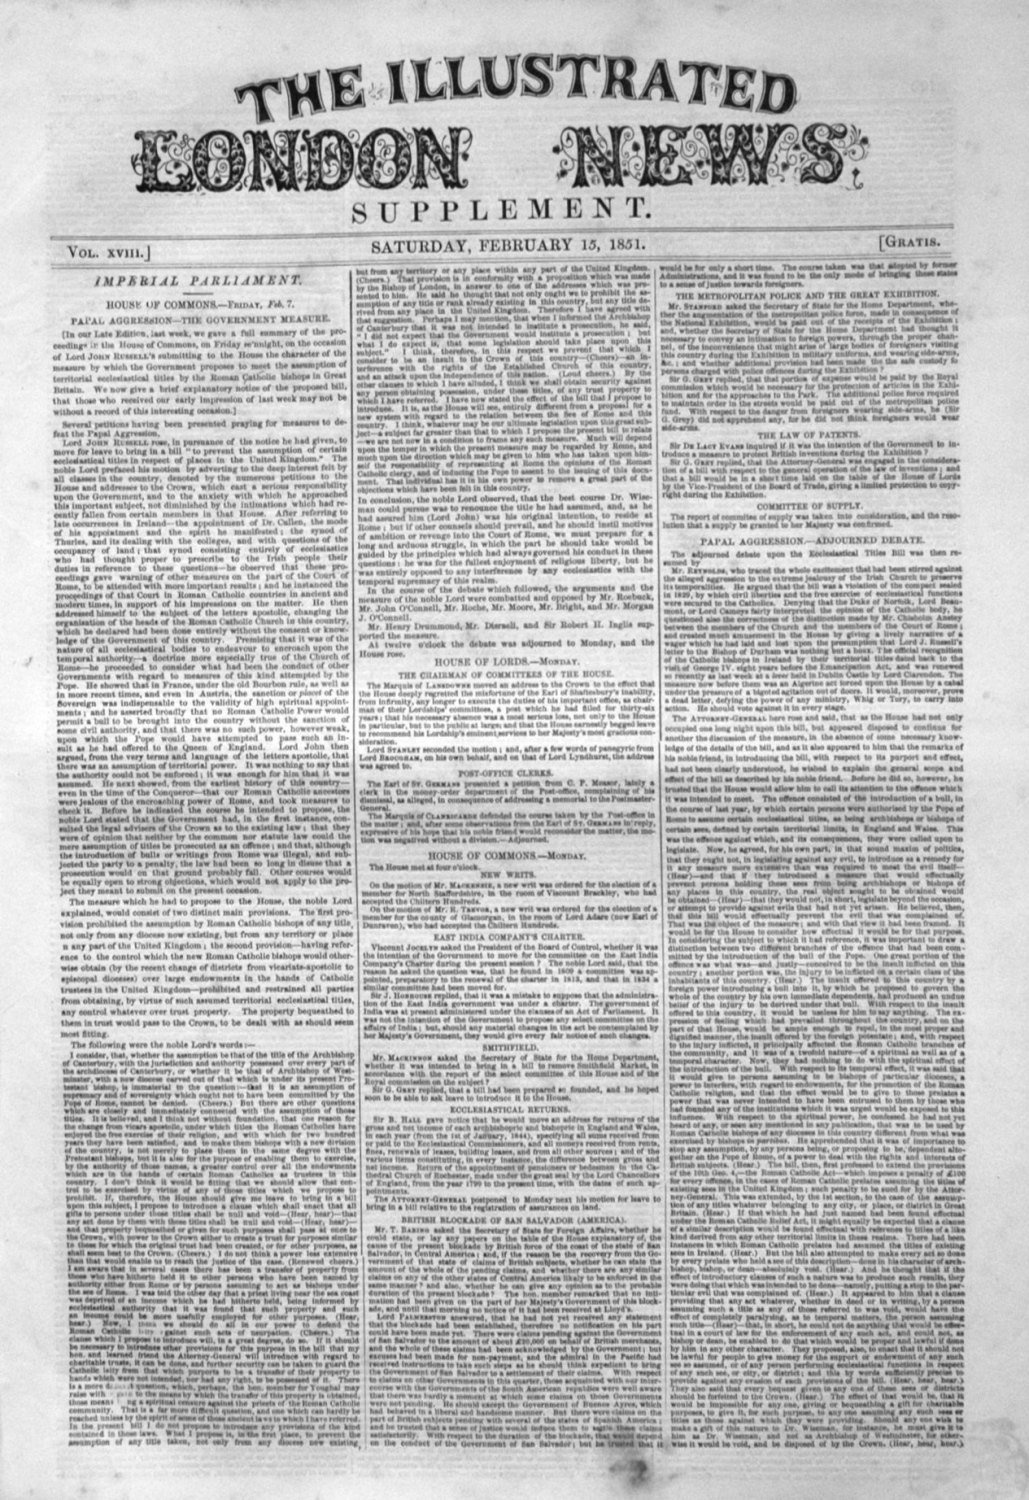 Illustrated London News (Supplement) for February 15th, 1851.